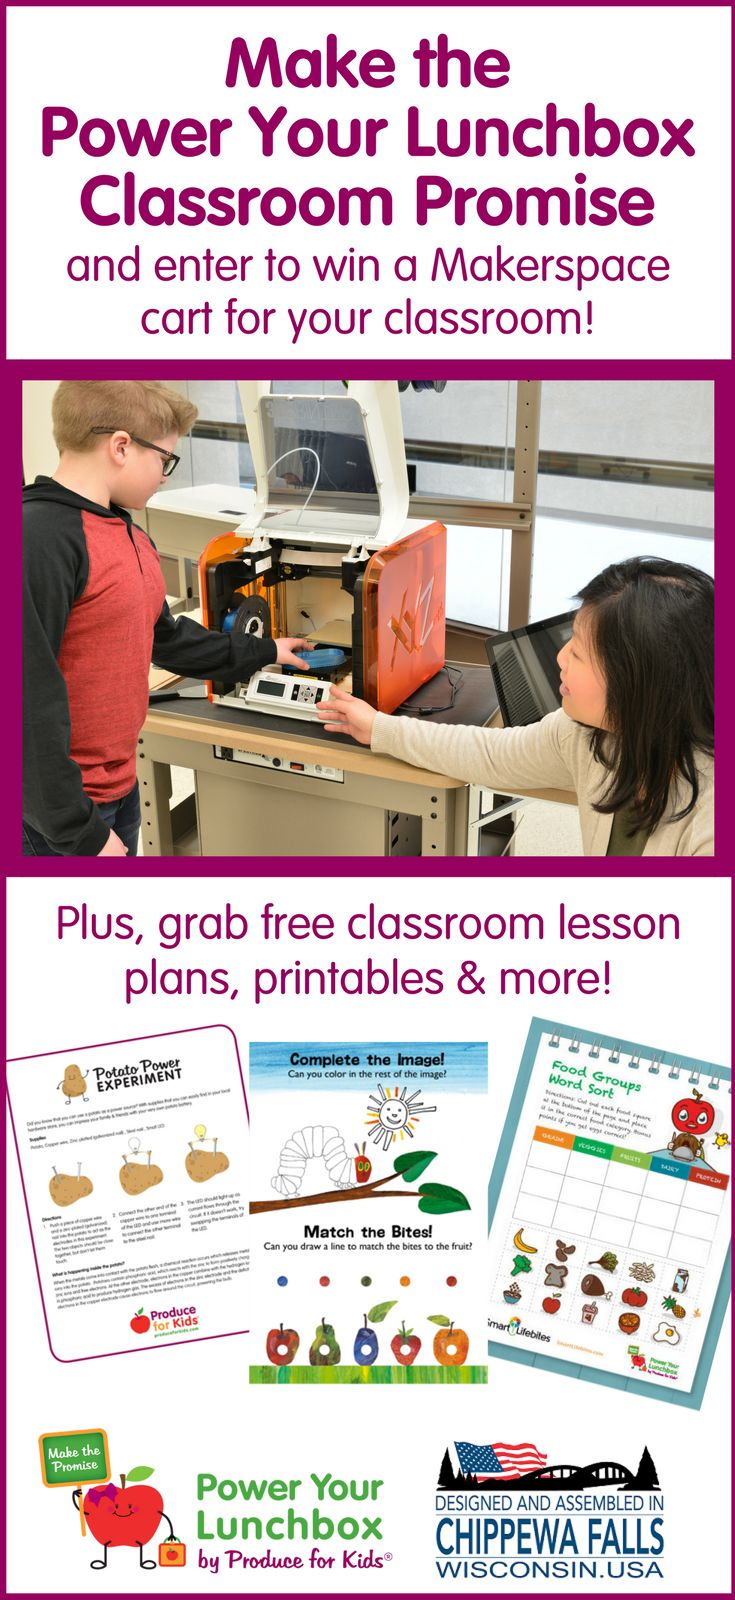 Make the Power Your Lunchbox Classroom Promise & enter to win a Makerspace cart for your classroom. Plus grab free classroom activities, lesson plans and more! #STEM #Classrooms